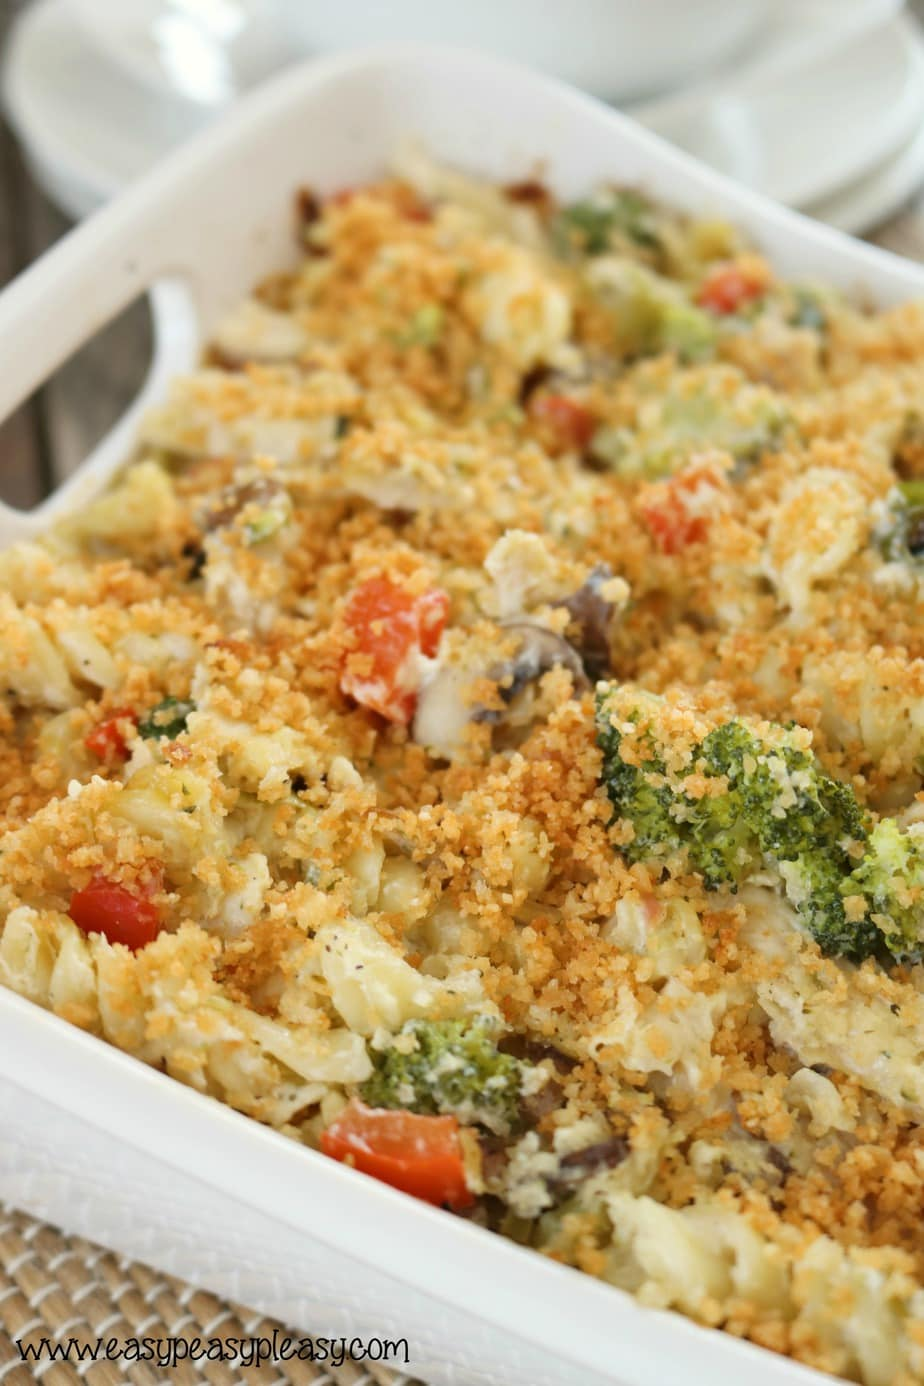 Creamy Chicken Broccoli Casserole is an amazing dish for potlucks. easypeasypleasy.com